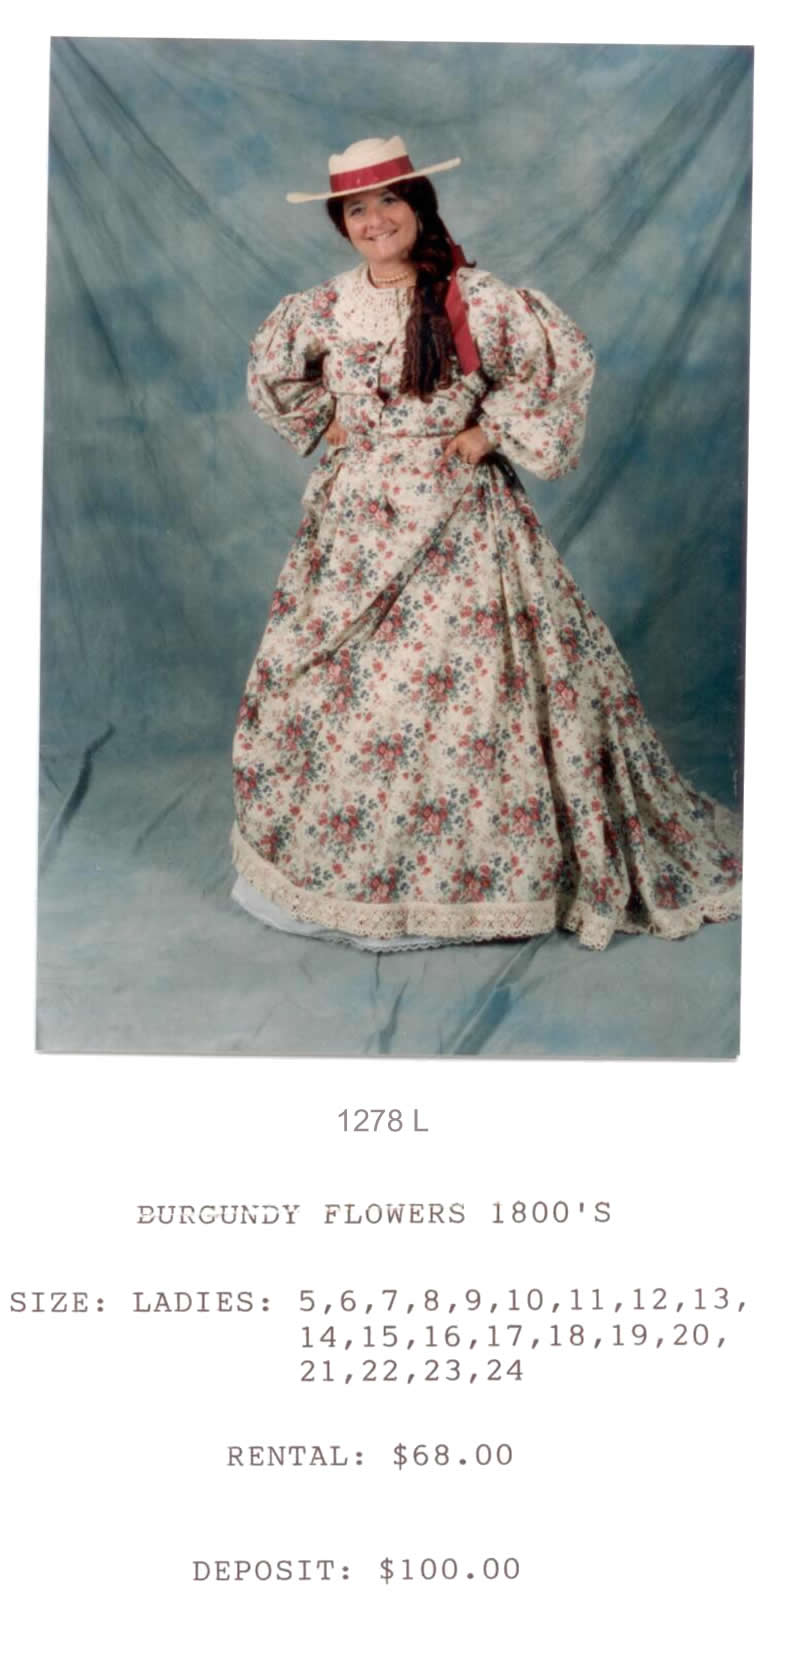 1800's BURGANDY FLOWER DRESS